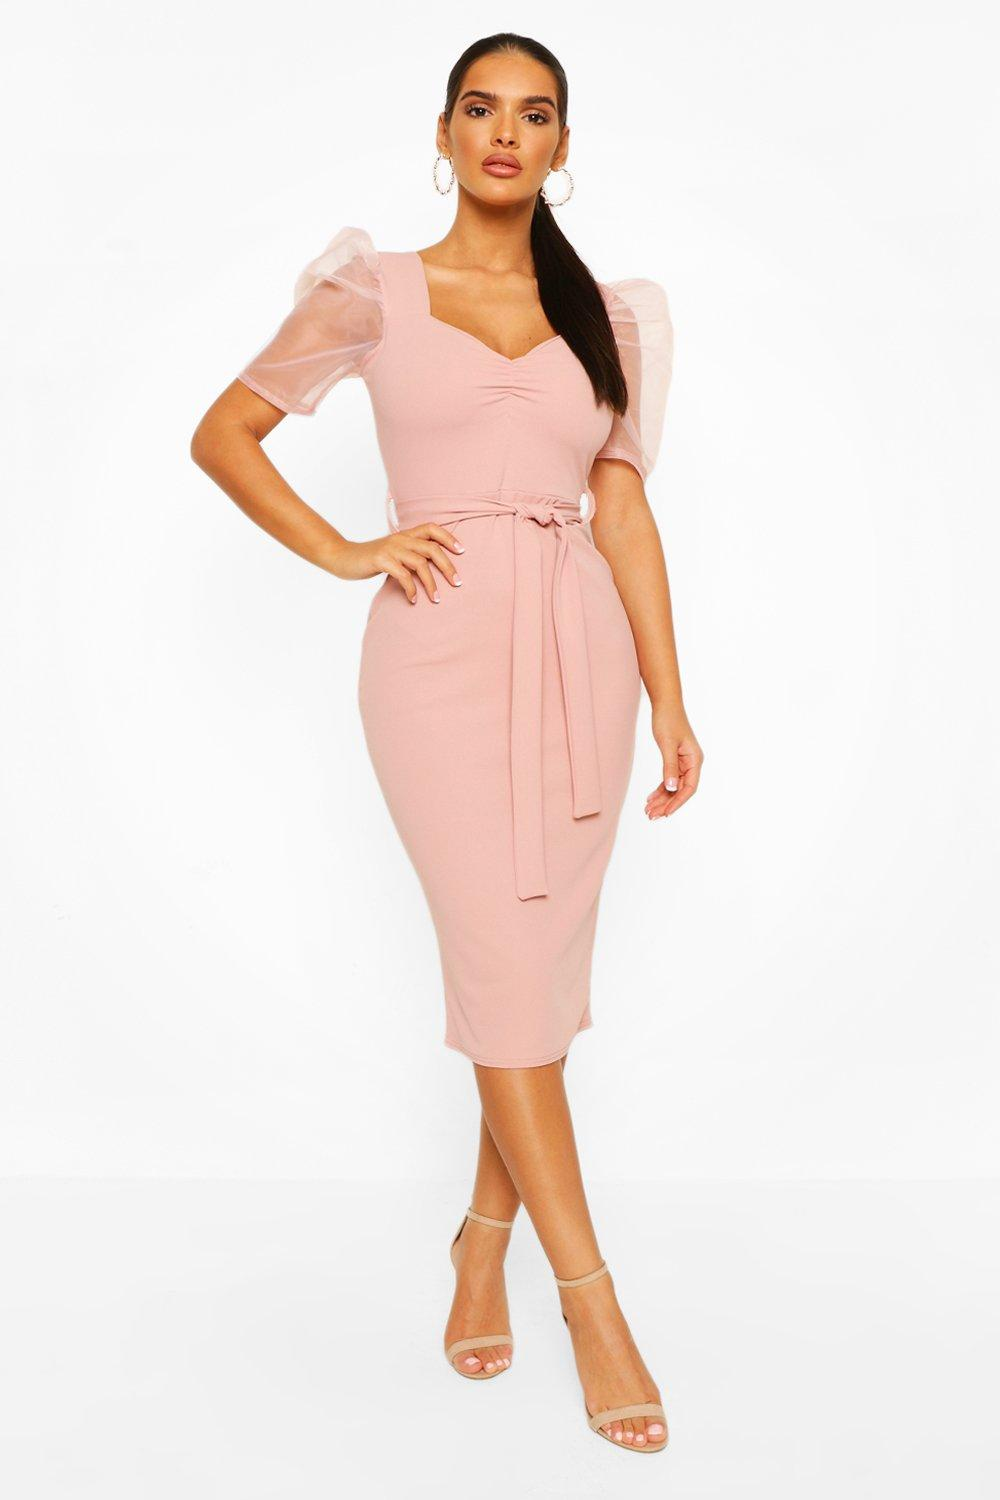 80s Dresses | Casual to Party Dresses Womens Organza Mesh Puff Sleeve Midi Dress - Pink - 10 $17.60 AT vintagedancer.com